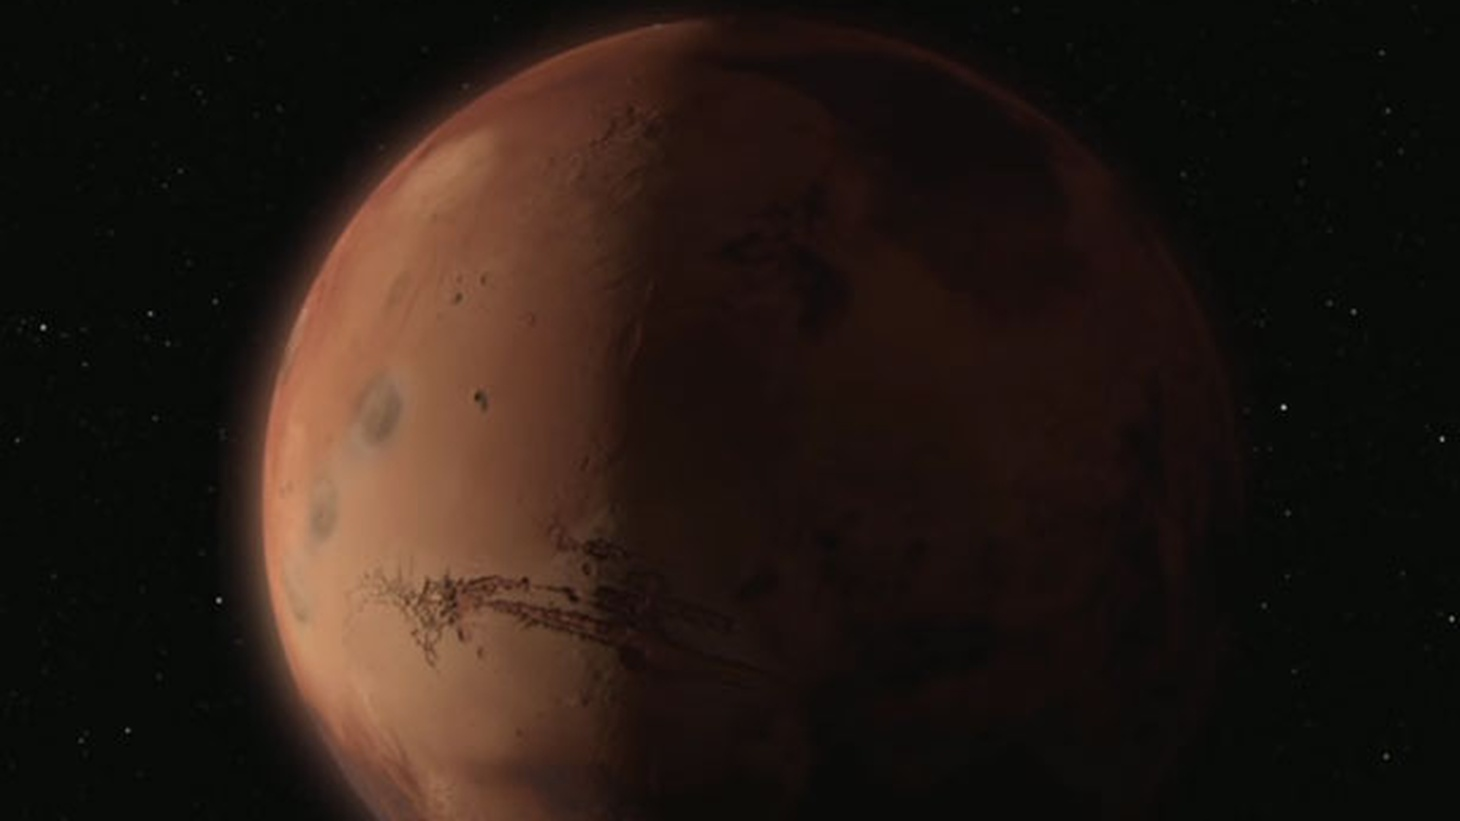 Futurist entrepreneur Elon Musk says humanity has only one alternative to inevitable extinction here on Earth: the colonization of outer space and other planets. He says we can get to Mars in less than 10 years.